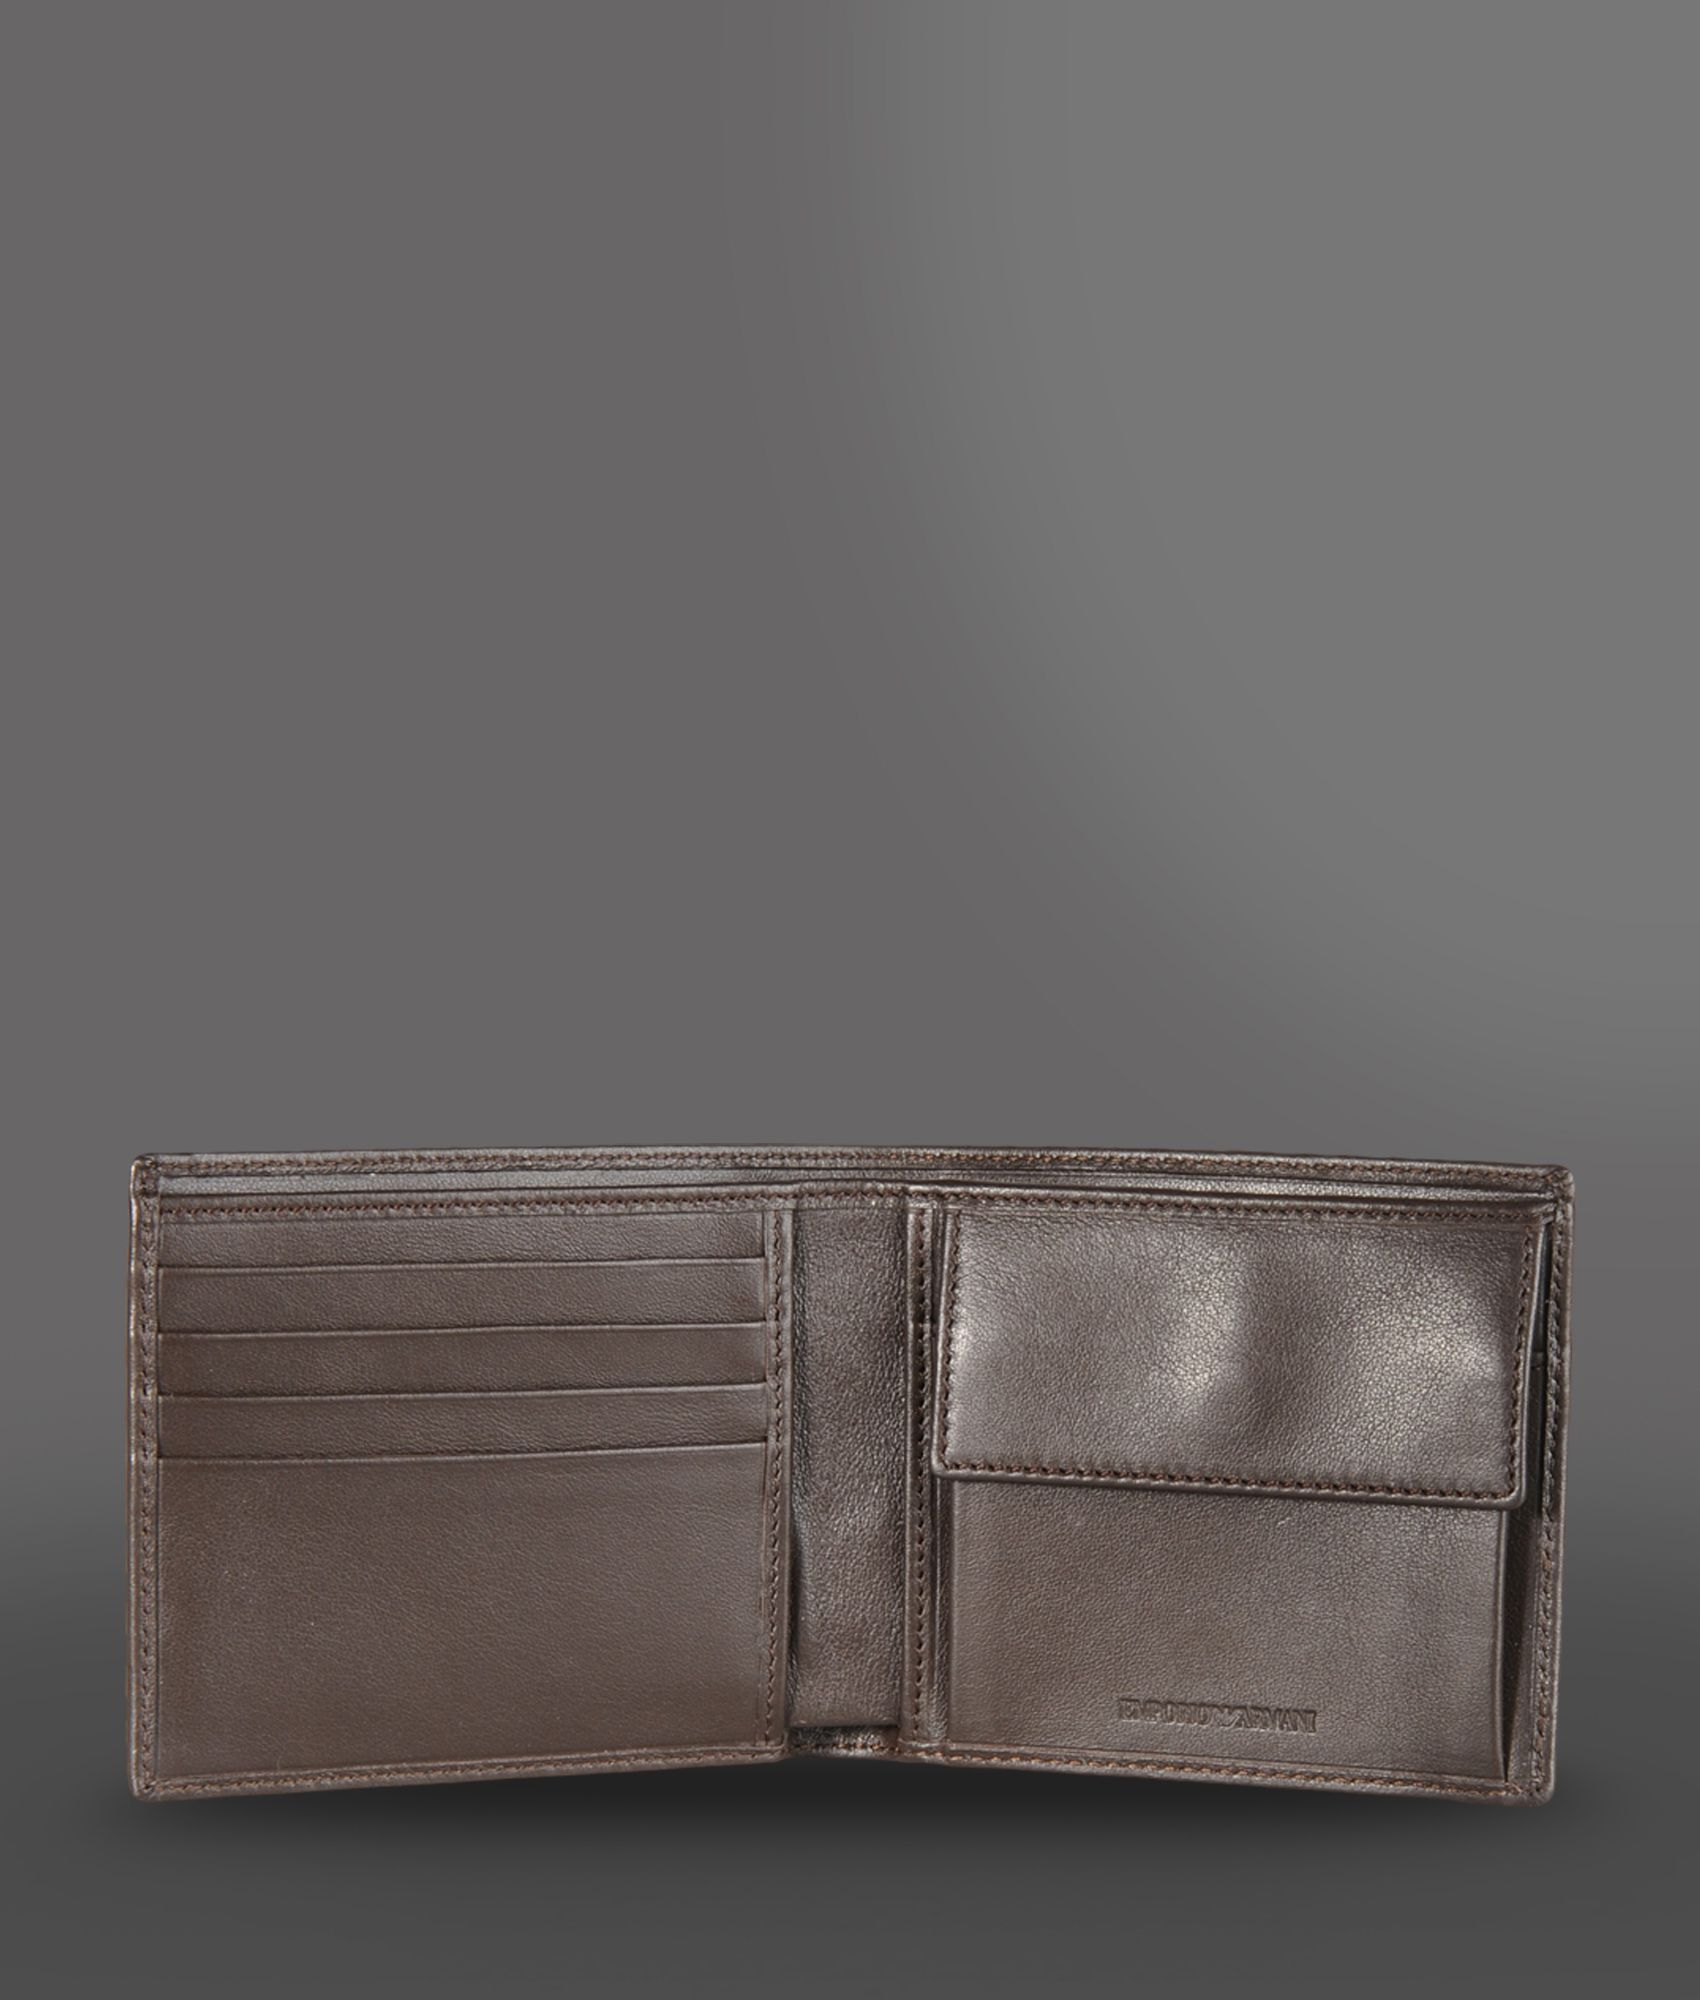 480b97ac8a Lyst - Emporio Armani Leather Wallet with Coin Purse in Brown for Men